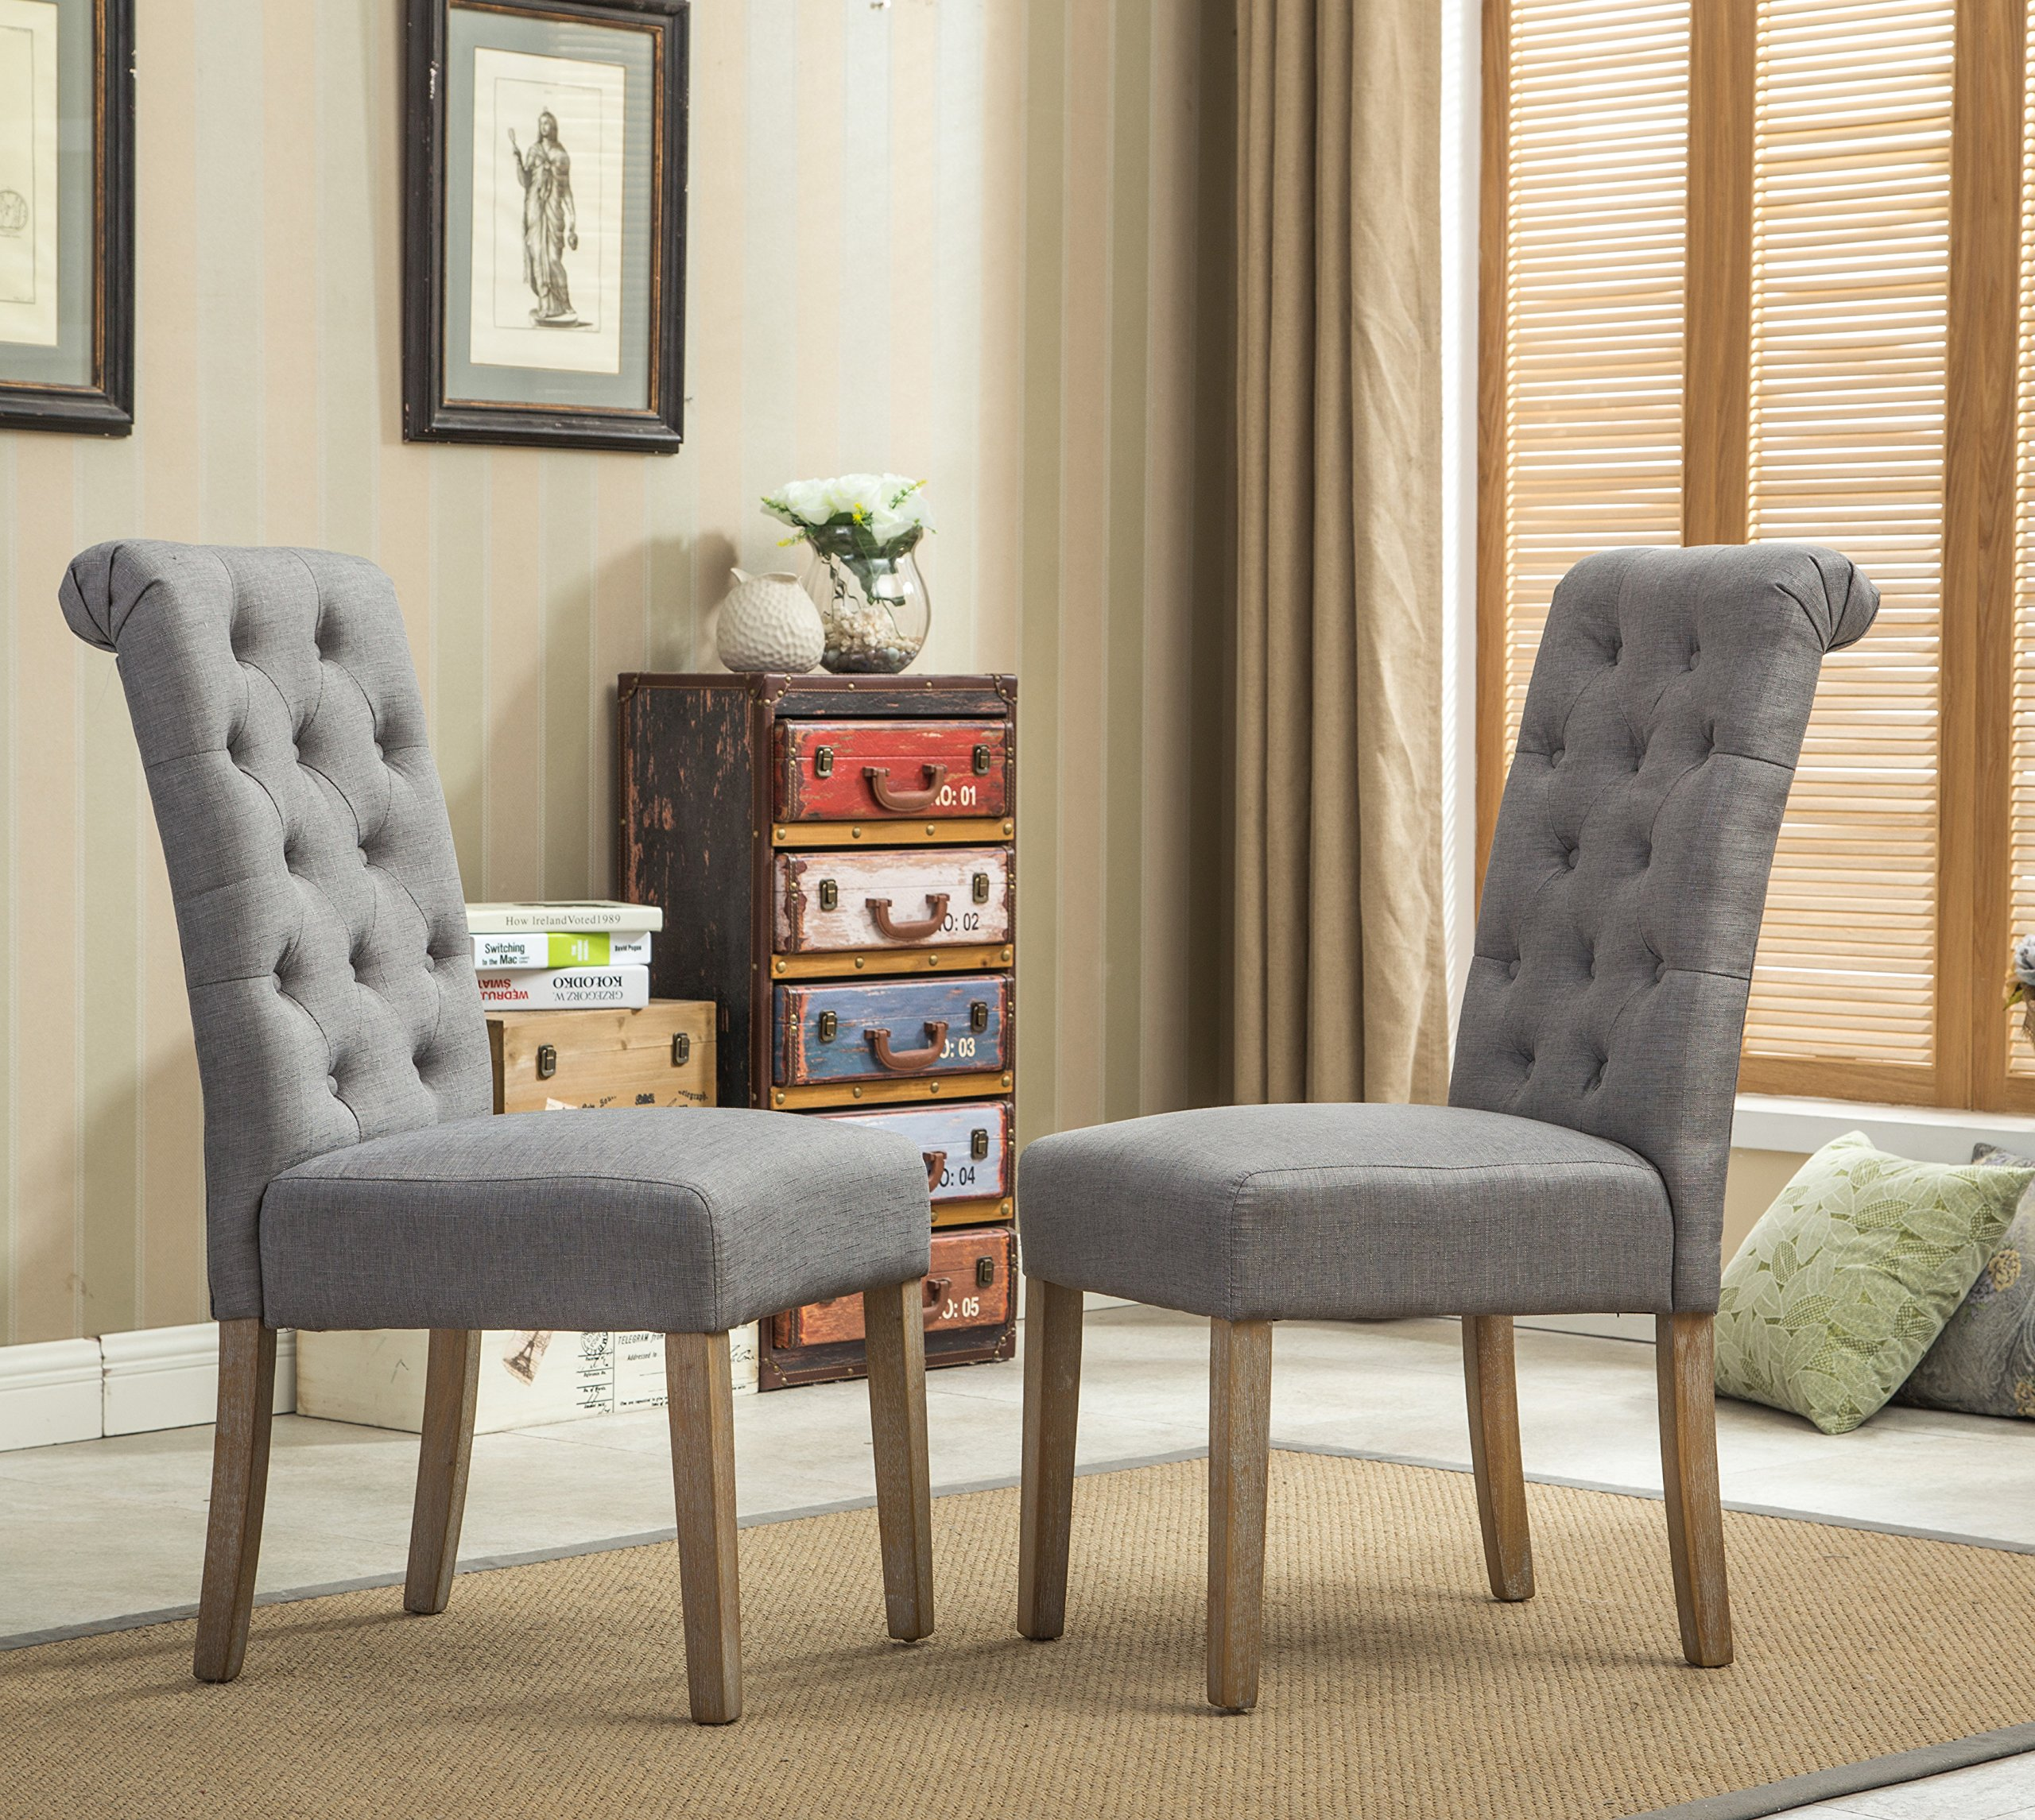 Roundhill Furniture Habit Grey Solid Wood Tufted Parsons Dining Chair (Set of 2), Gray by Roundhill Furniture